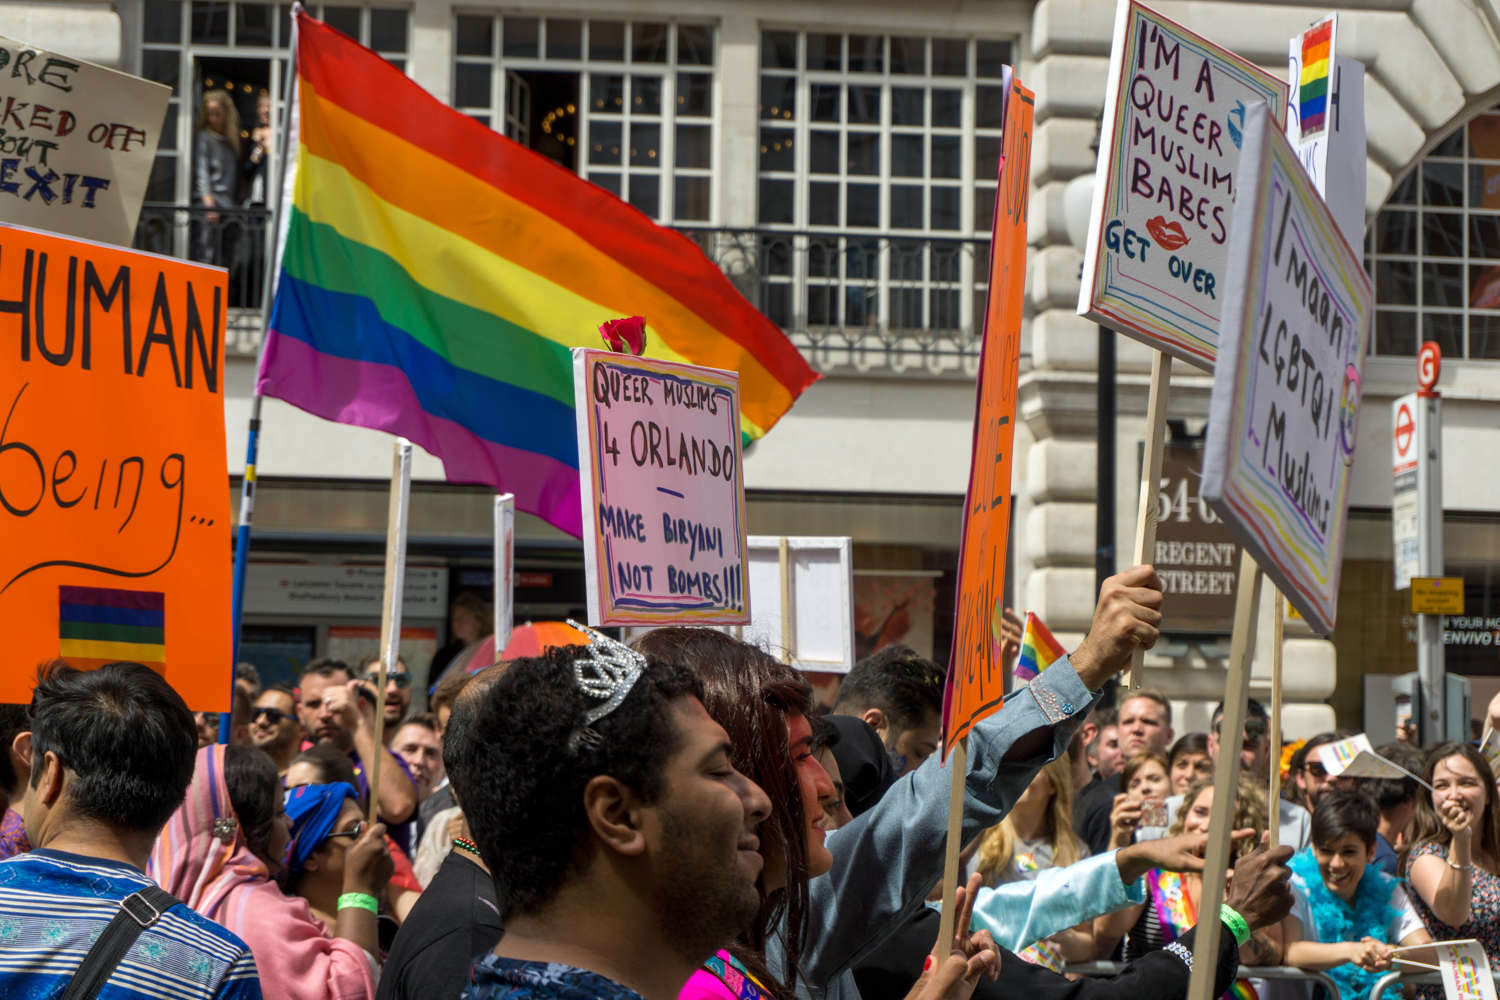 In Pictures London Pride  Draft Itinerary